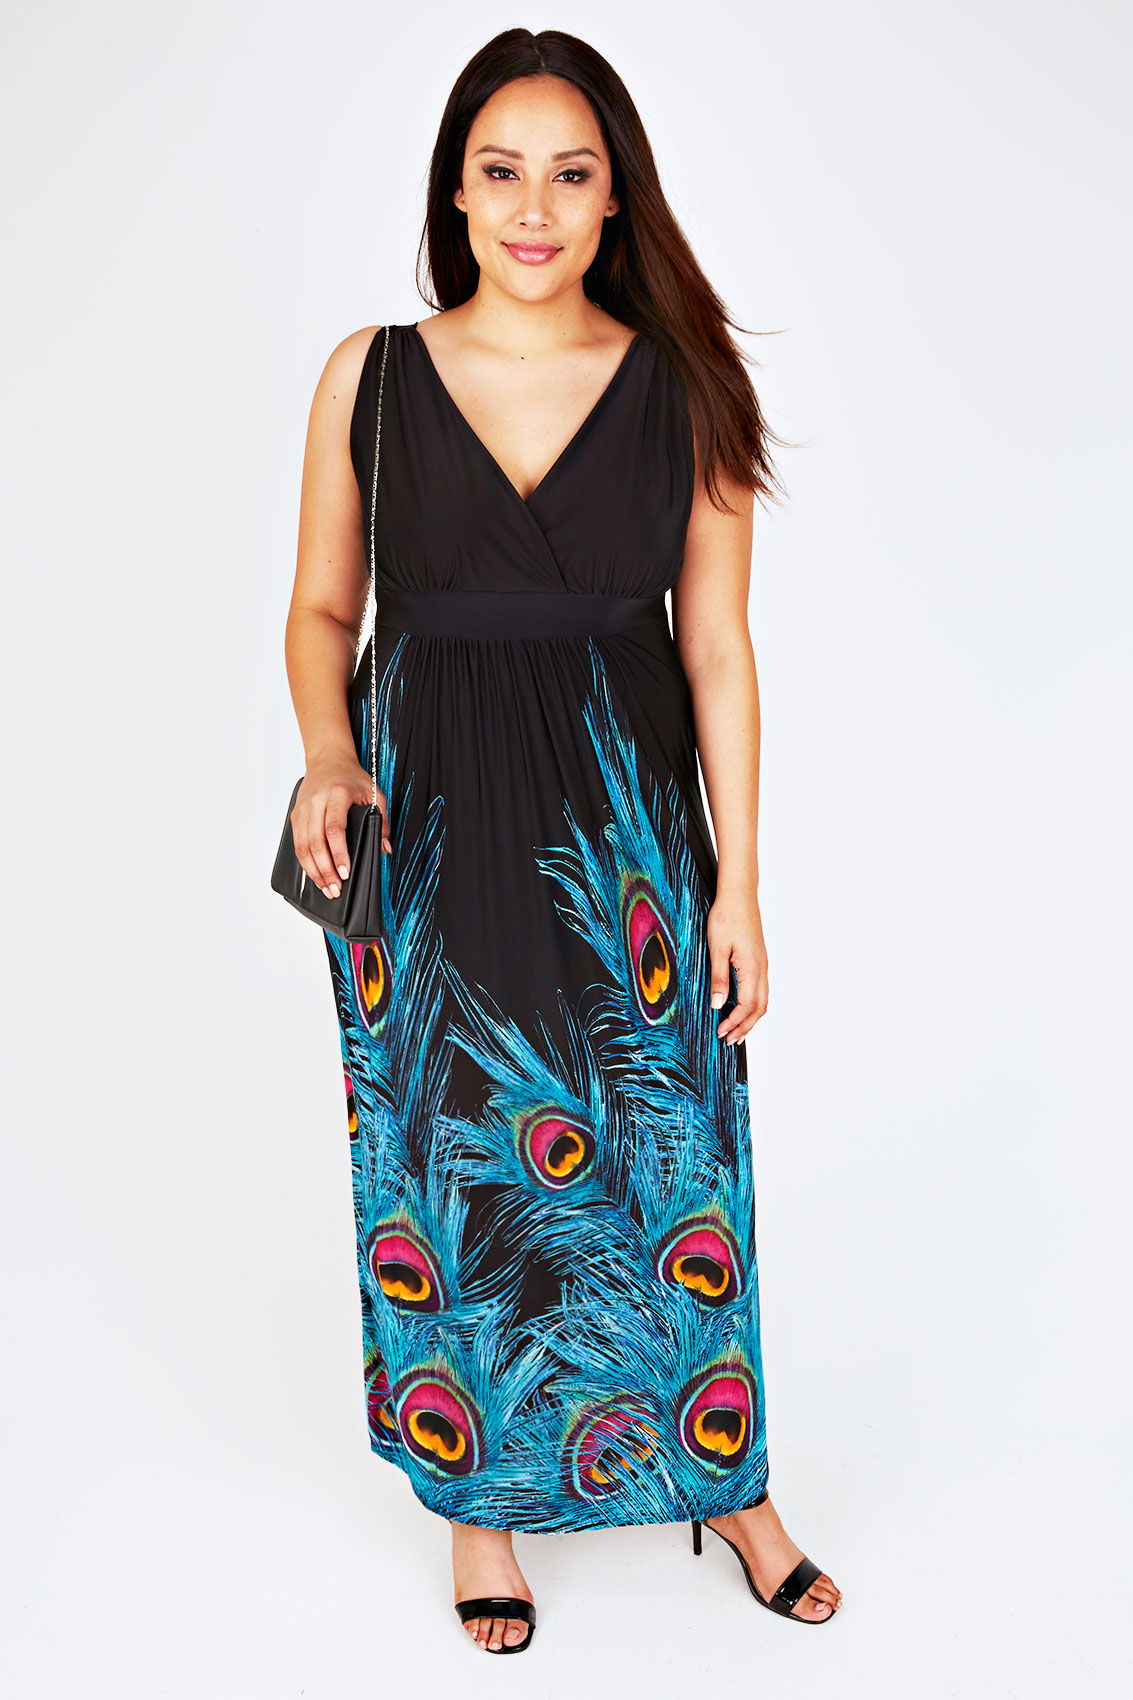 black and blue peacock feather print maxi dress plus size. Black Bedroom Furniture Sets. Home Design Ideas